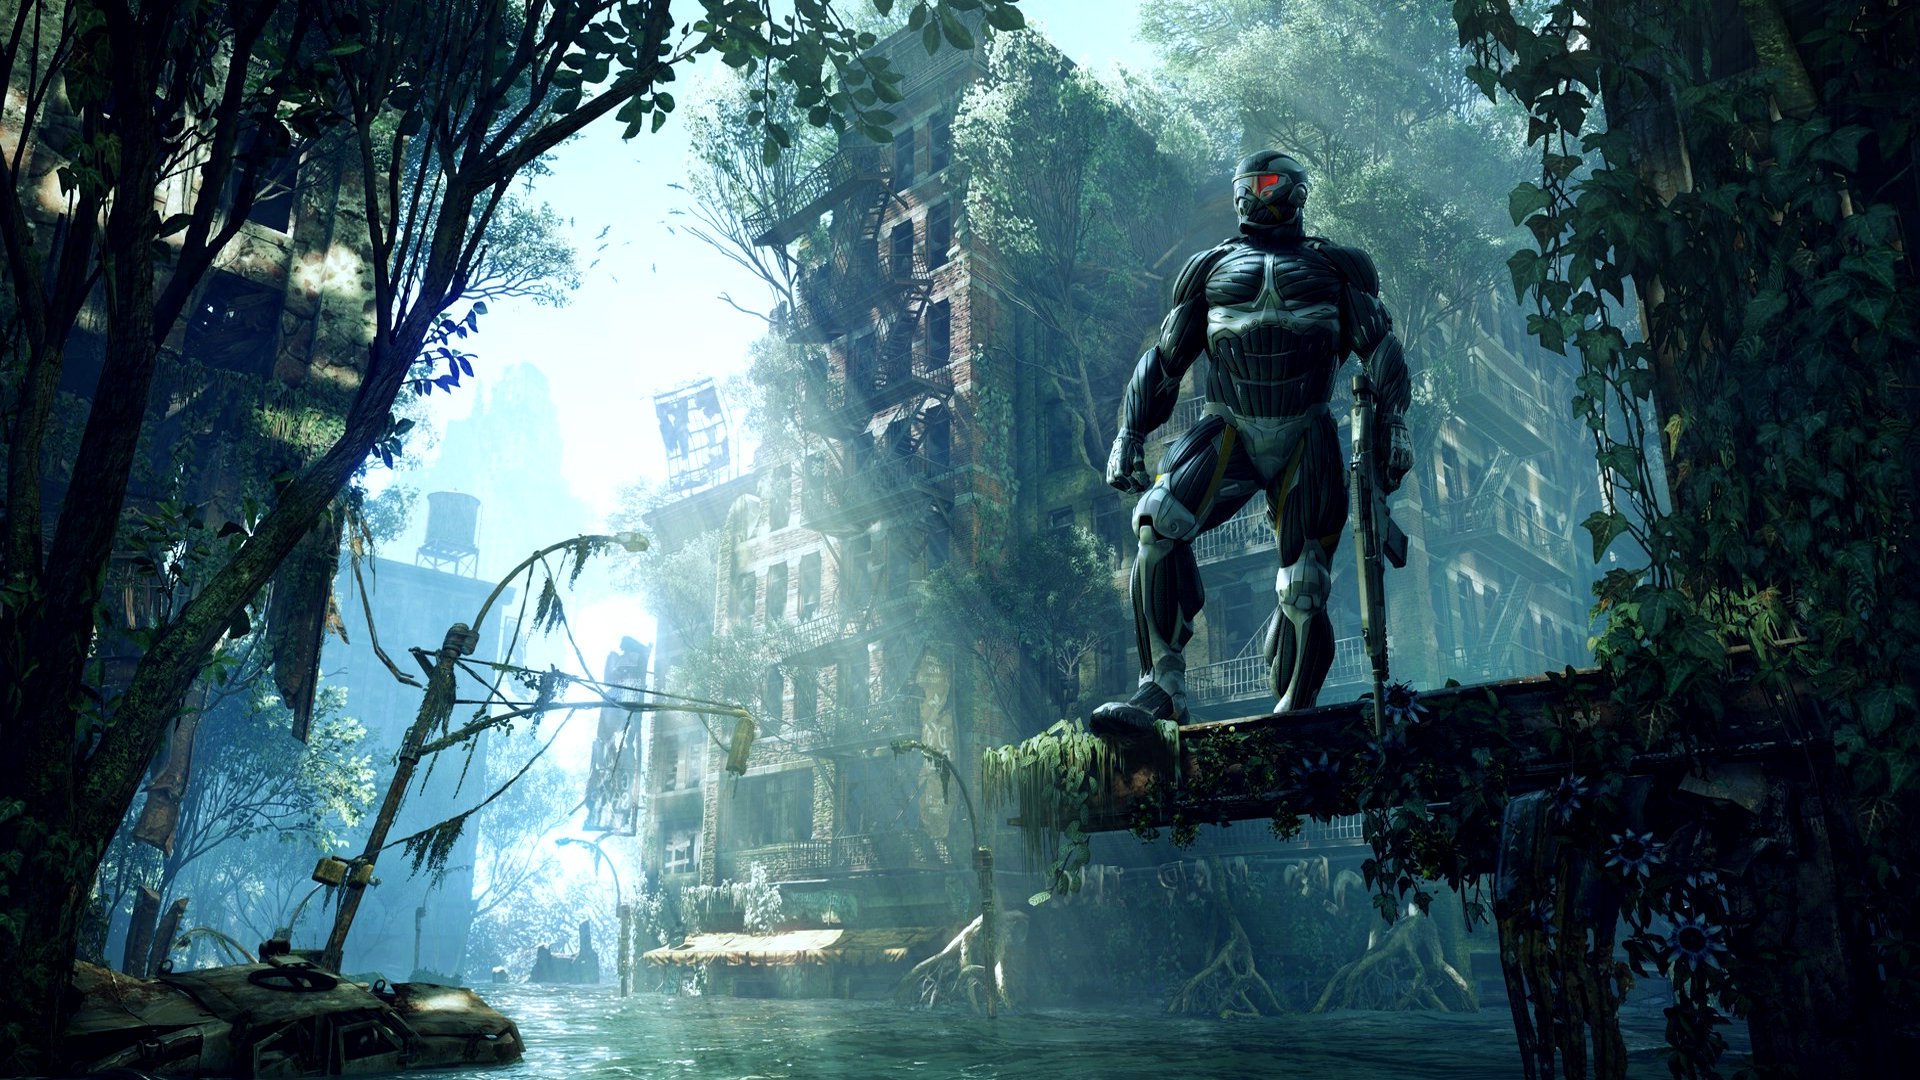 crysis 3 wallpaper A4